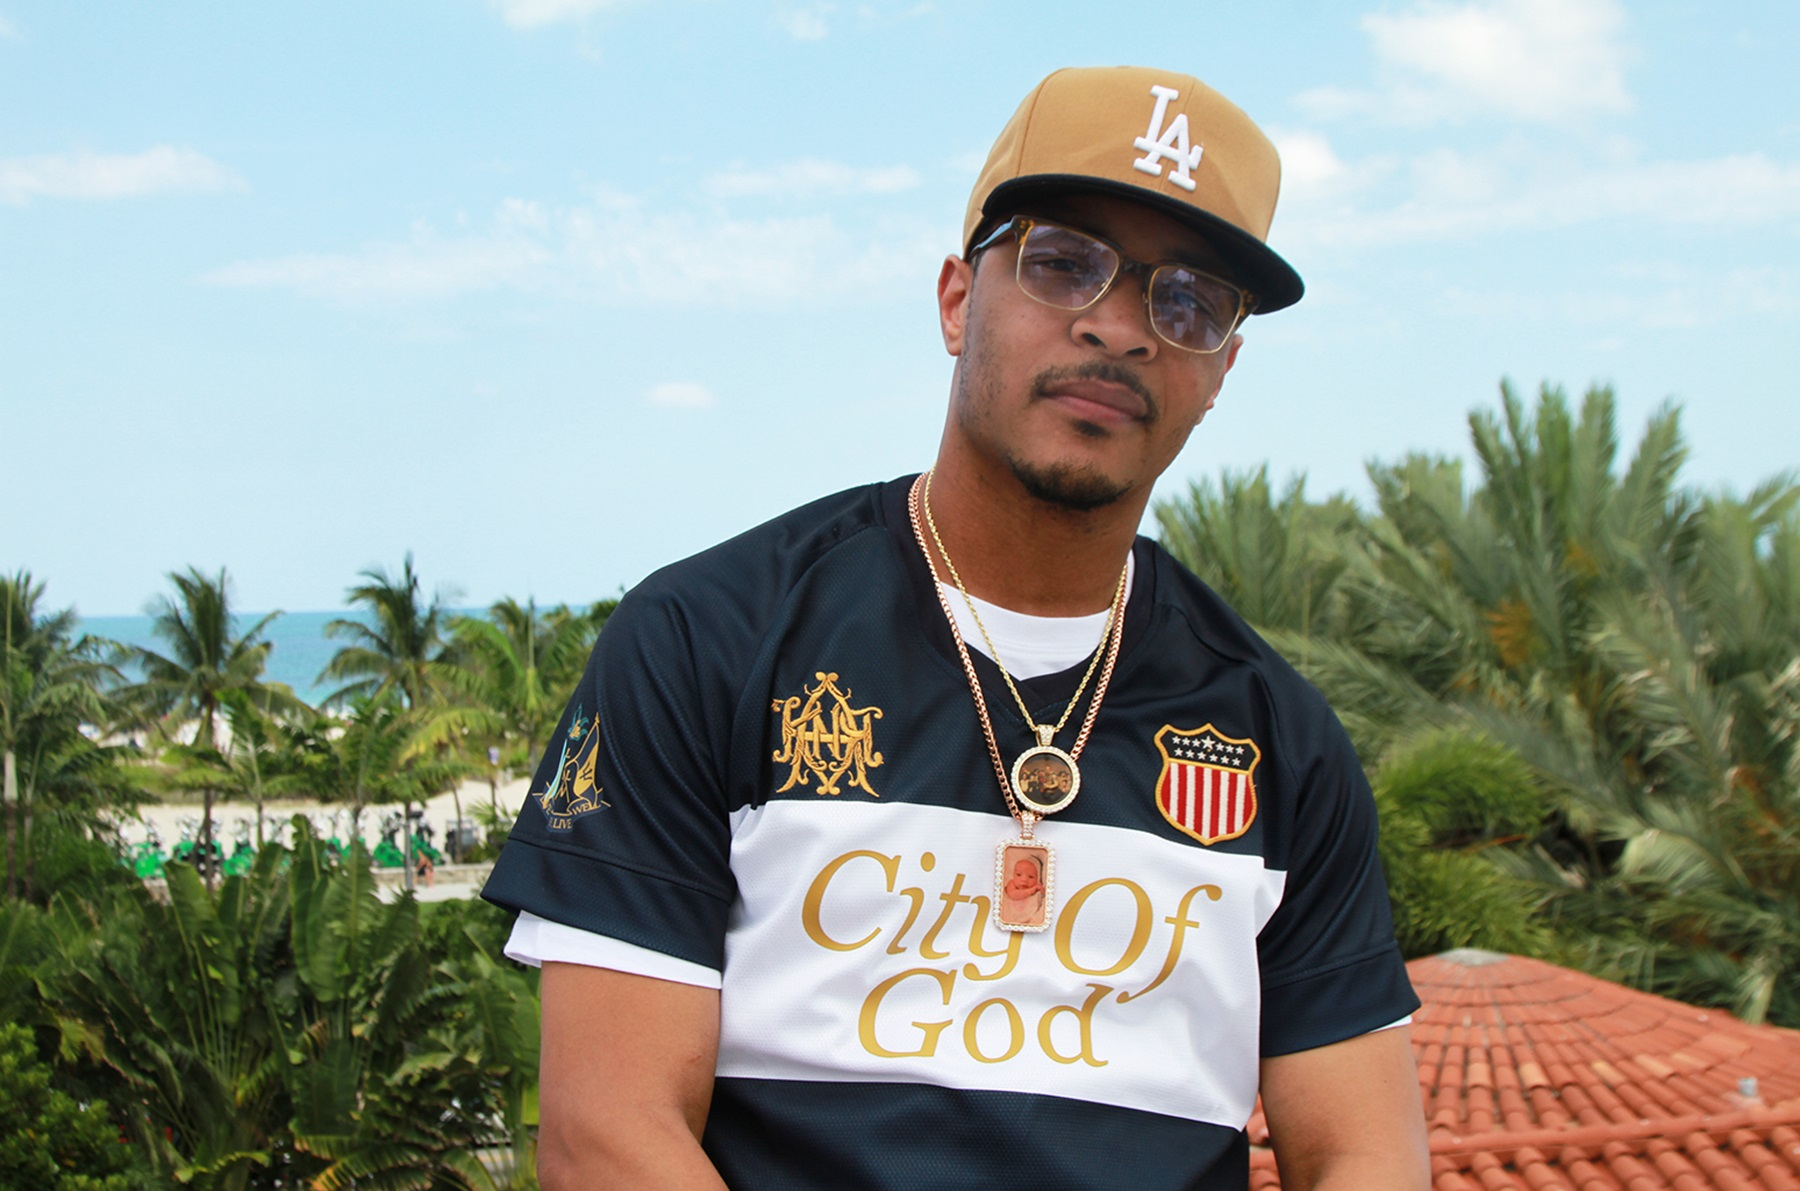 T.I. 50 Cent Benz At 19 Power Shout-Out